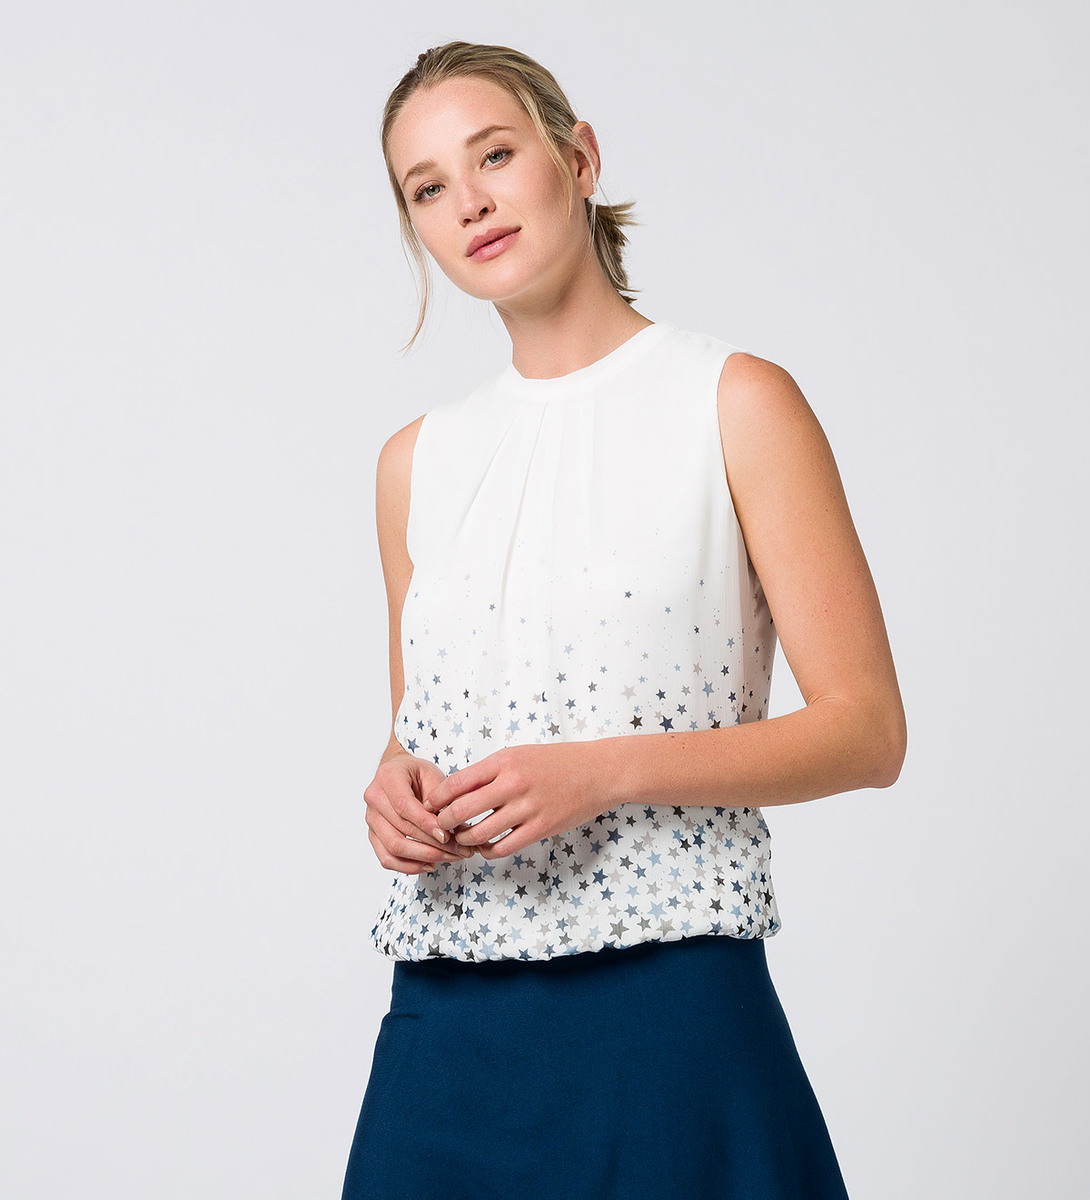 Bluse mit Sternenmuster in offwhite